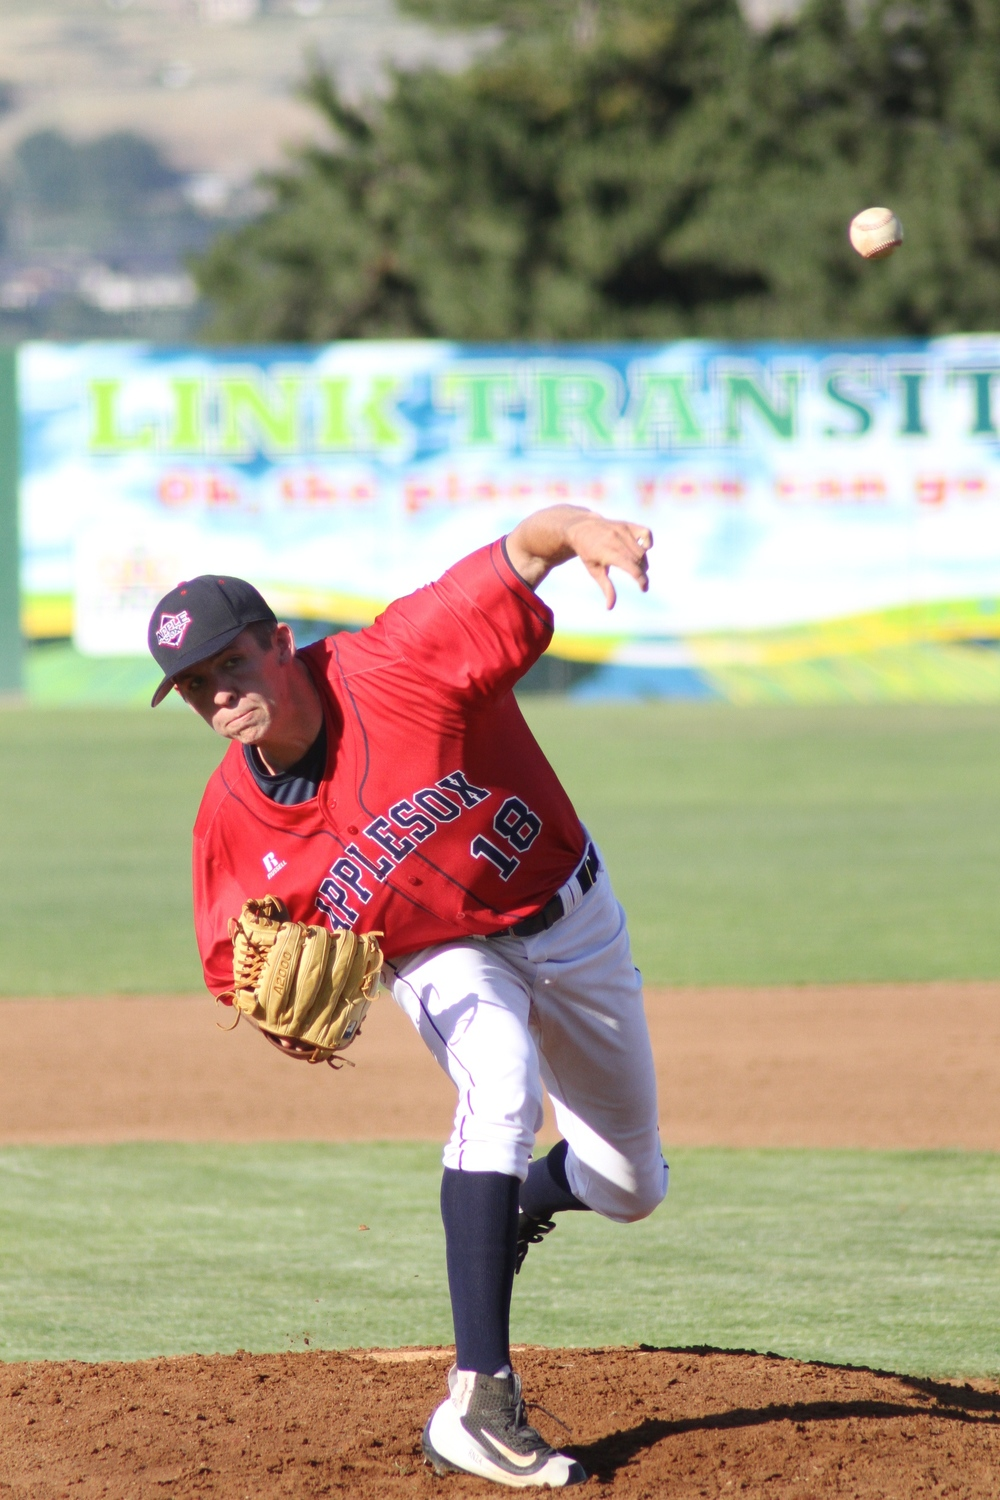 AppleSox left-hander Grady Miller (0-1), will look to get win number one, and propel the AppleSox to a series victory, Sunday. First pitch is at 6:05 p.m.